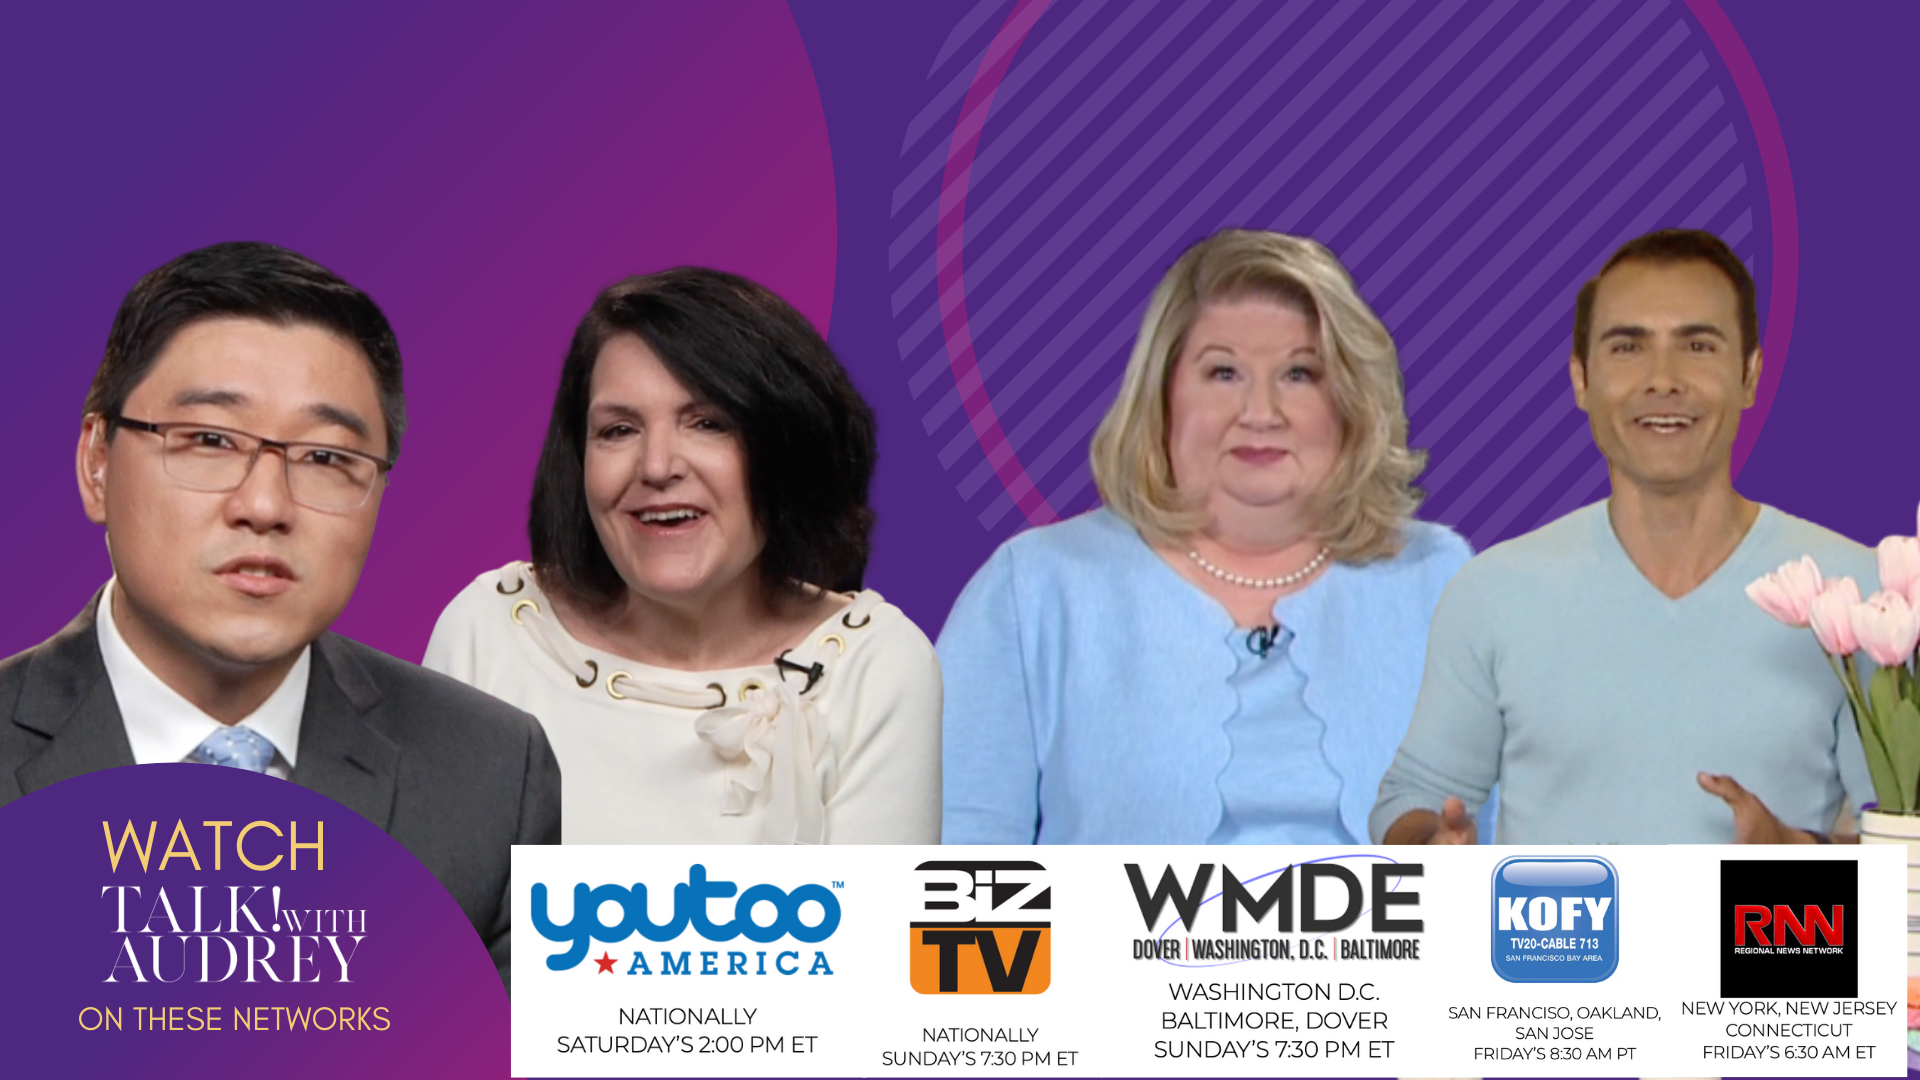 April 24-27, 2020 – TALK! with AUDREY TV